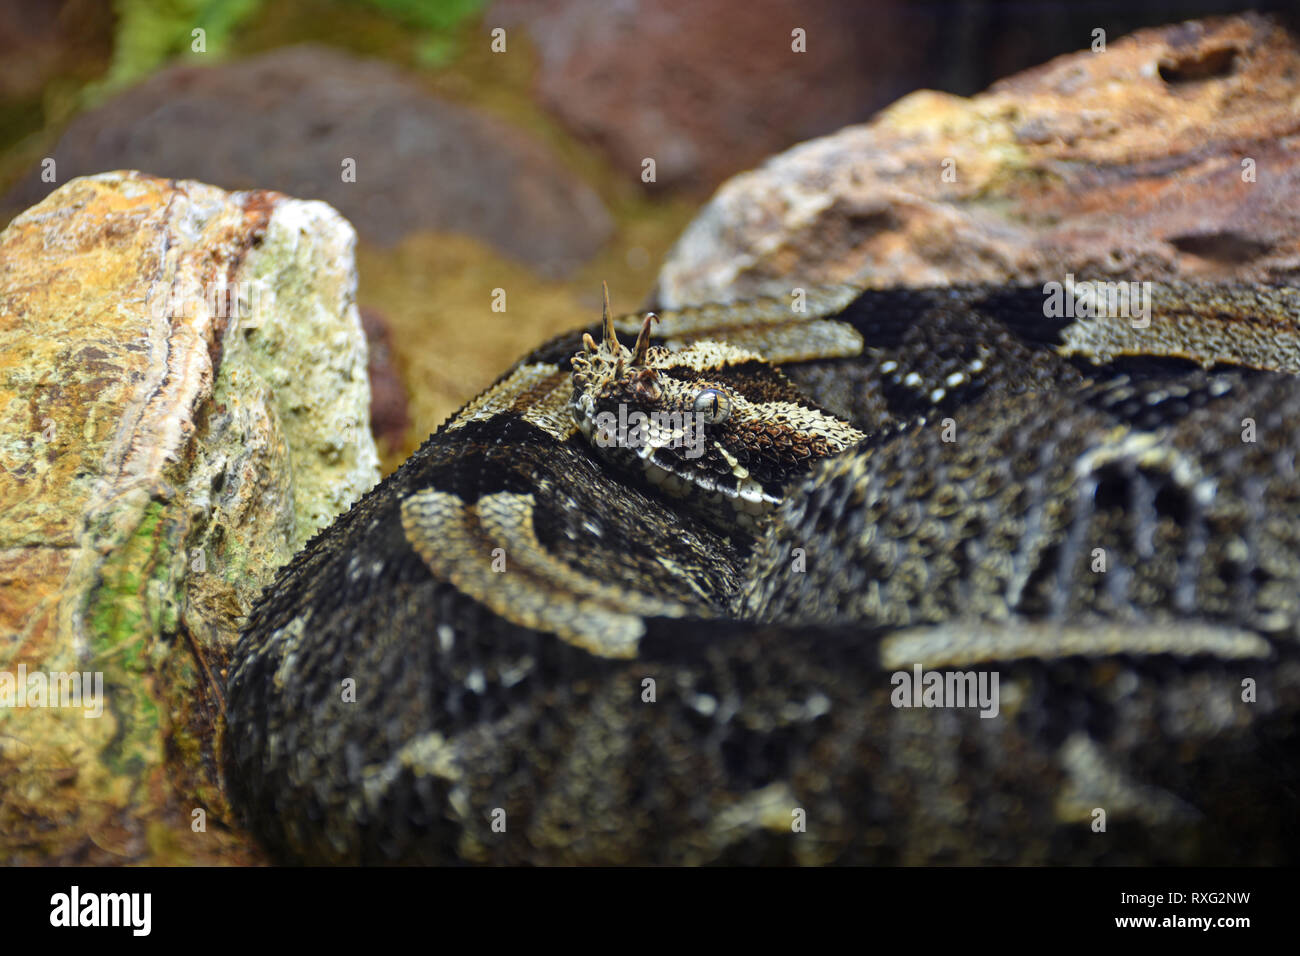 Rhinoceros Snake High Resolution Stock Photography And Images Alamy